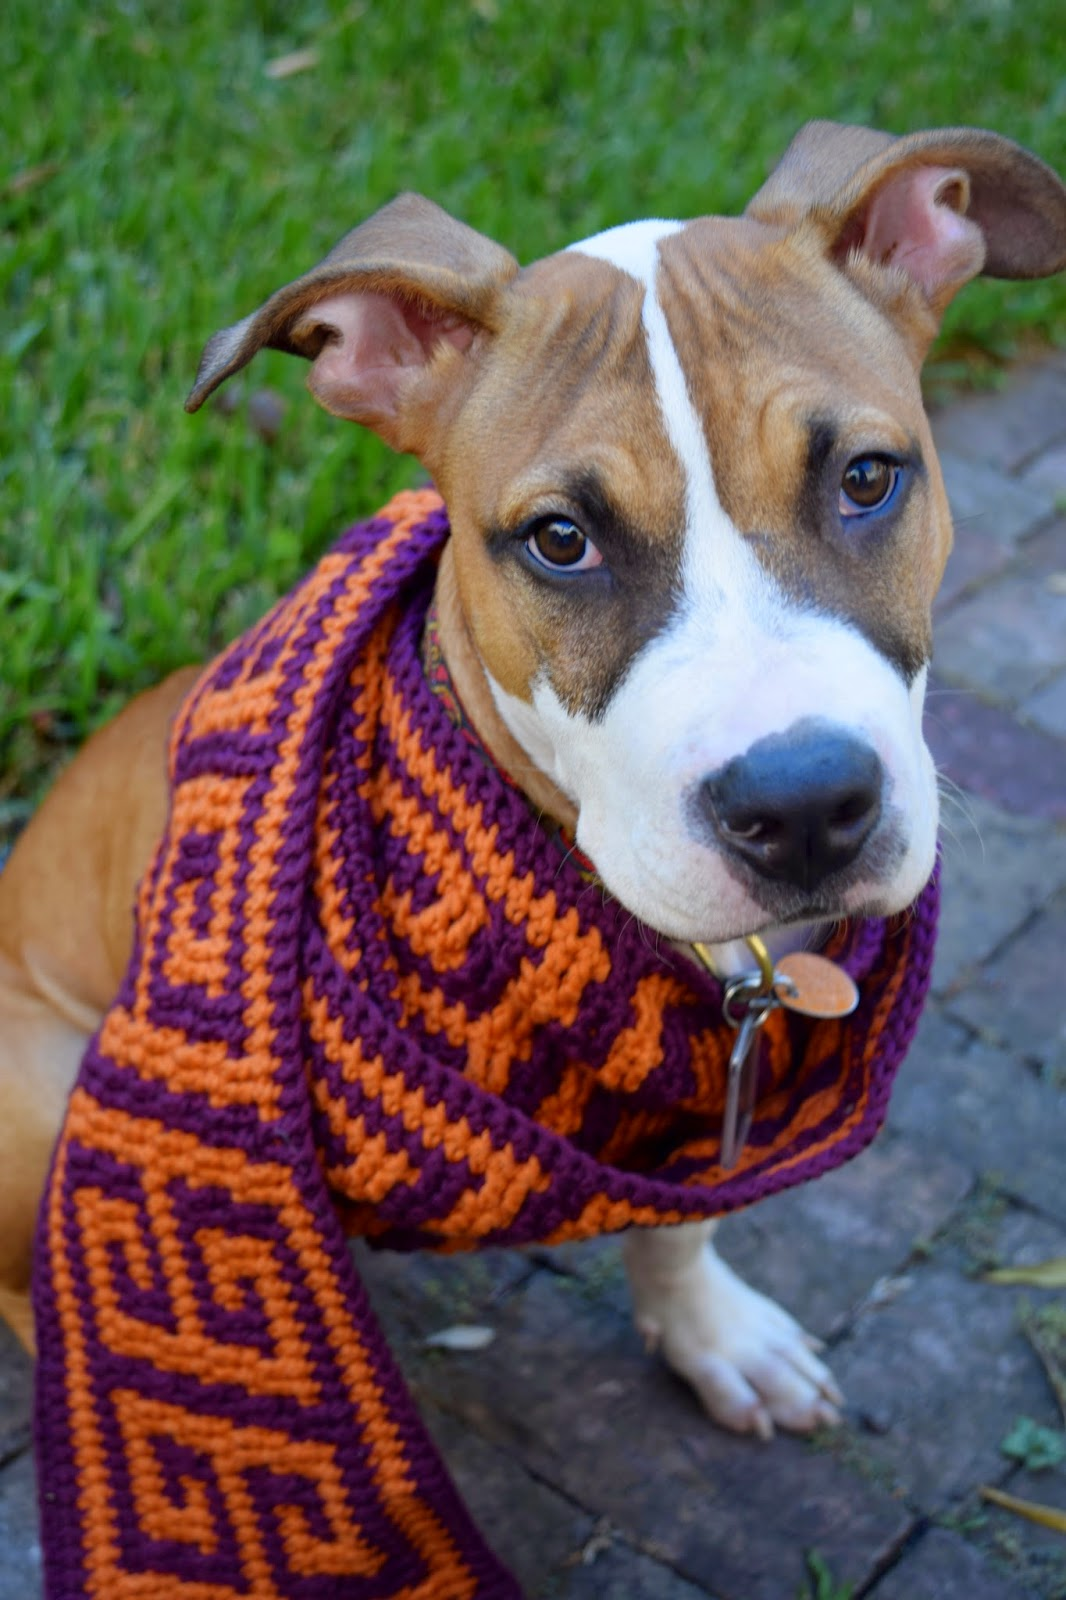 Dog wearing the square key scarf